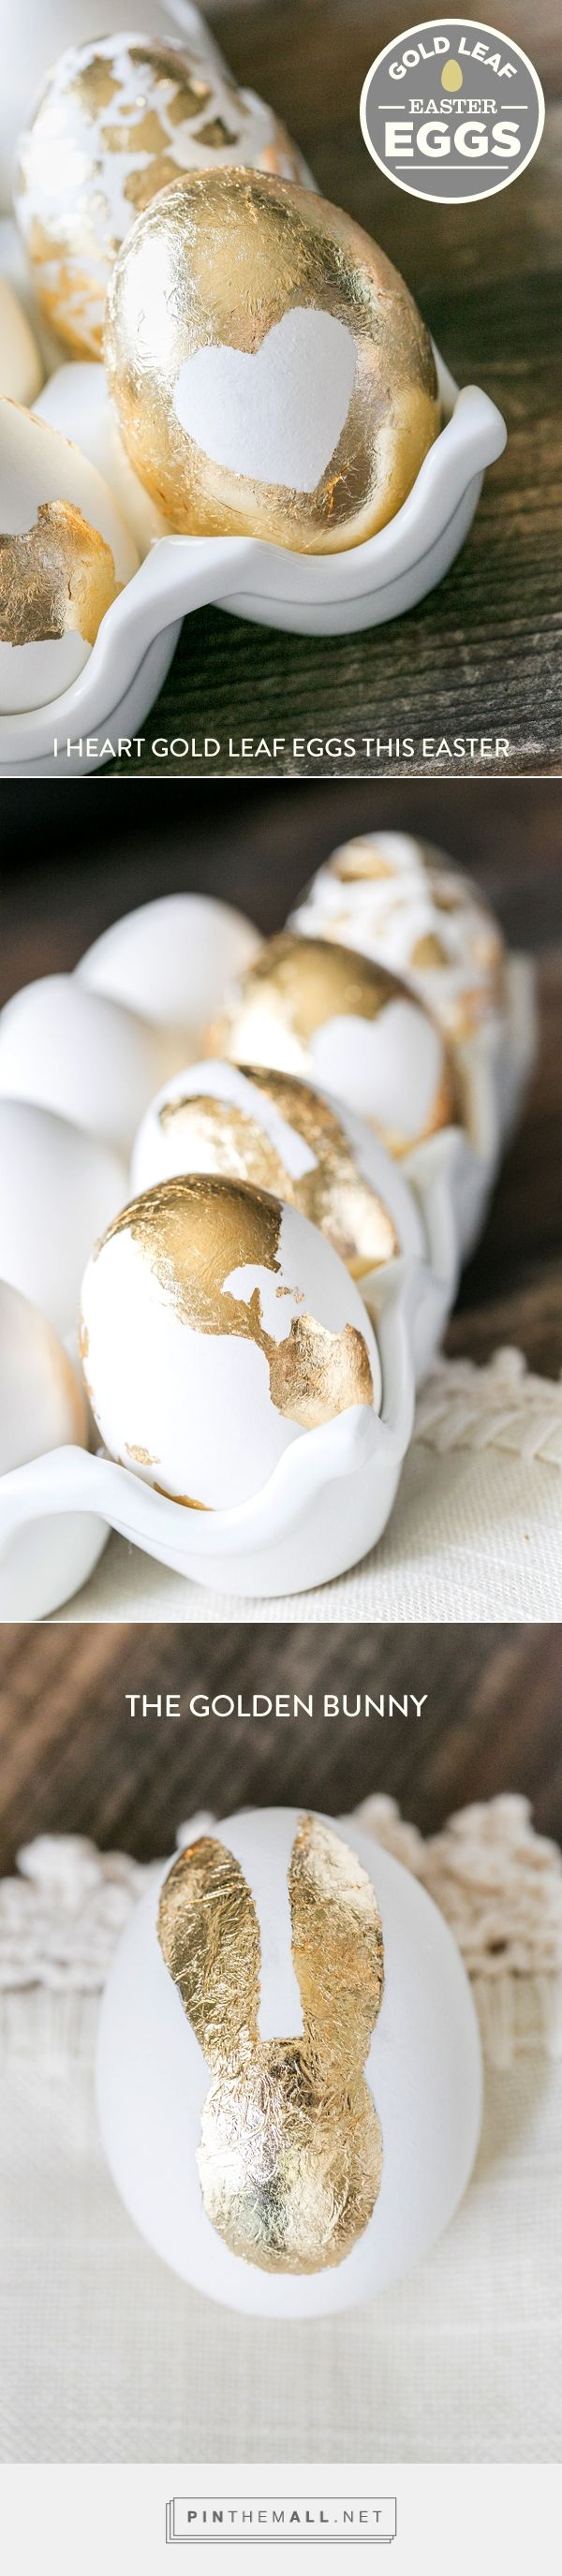 Gold Leaf Easter Eggs! - so glam! via Sugar and Charm - sweet recipes - entertaining tips - lifestyle inspiration - created via https://pinthemall.net